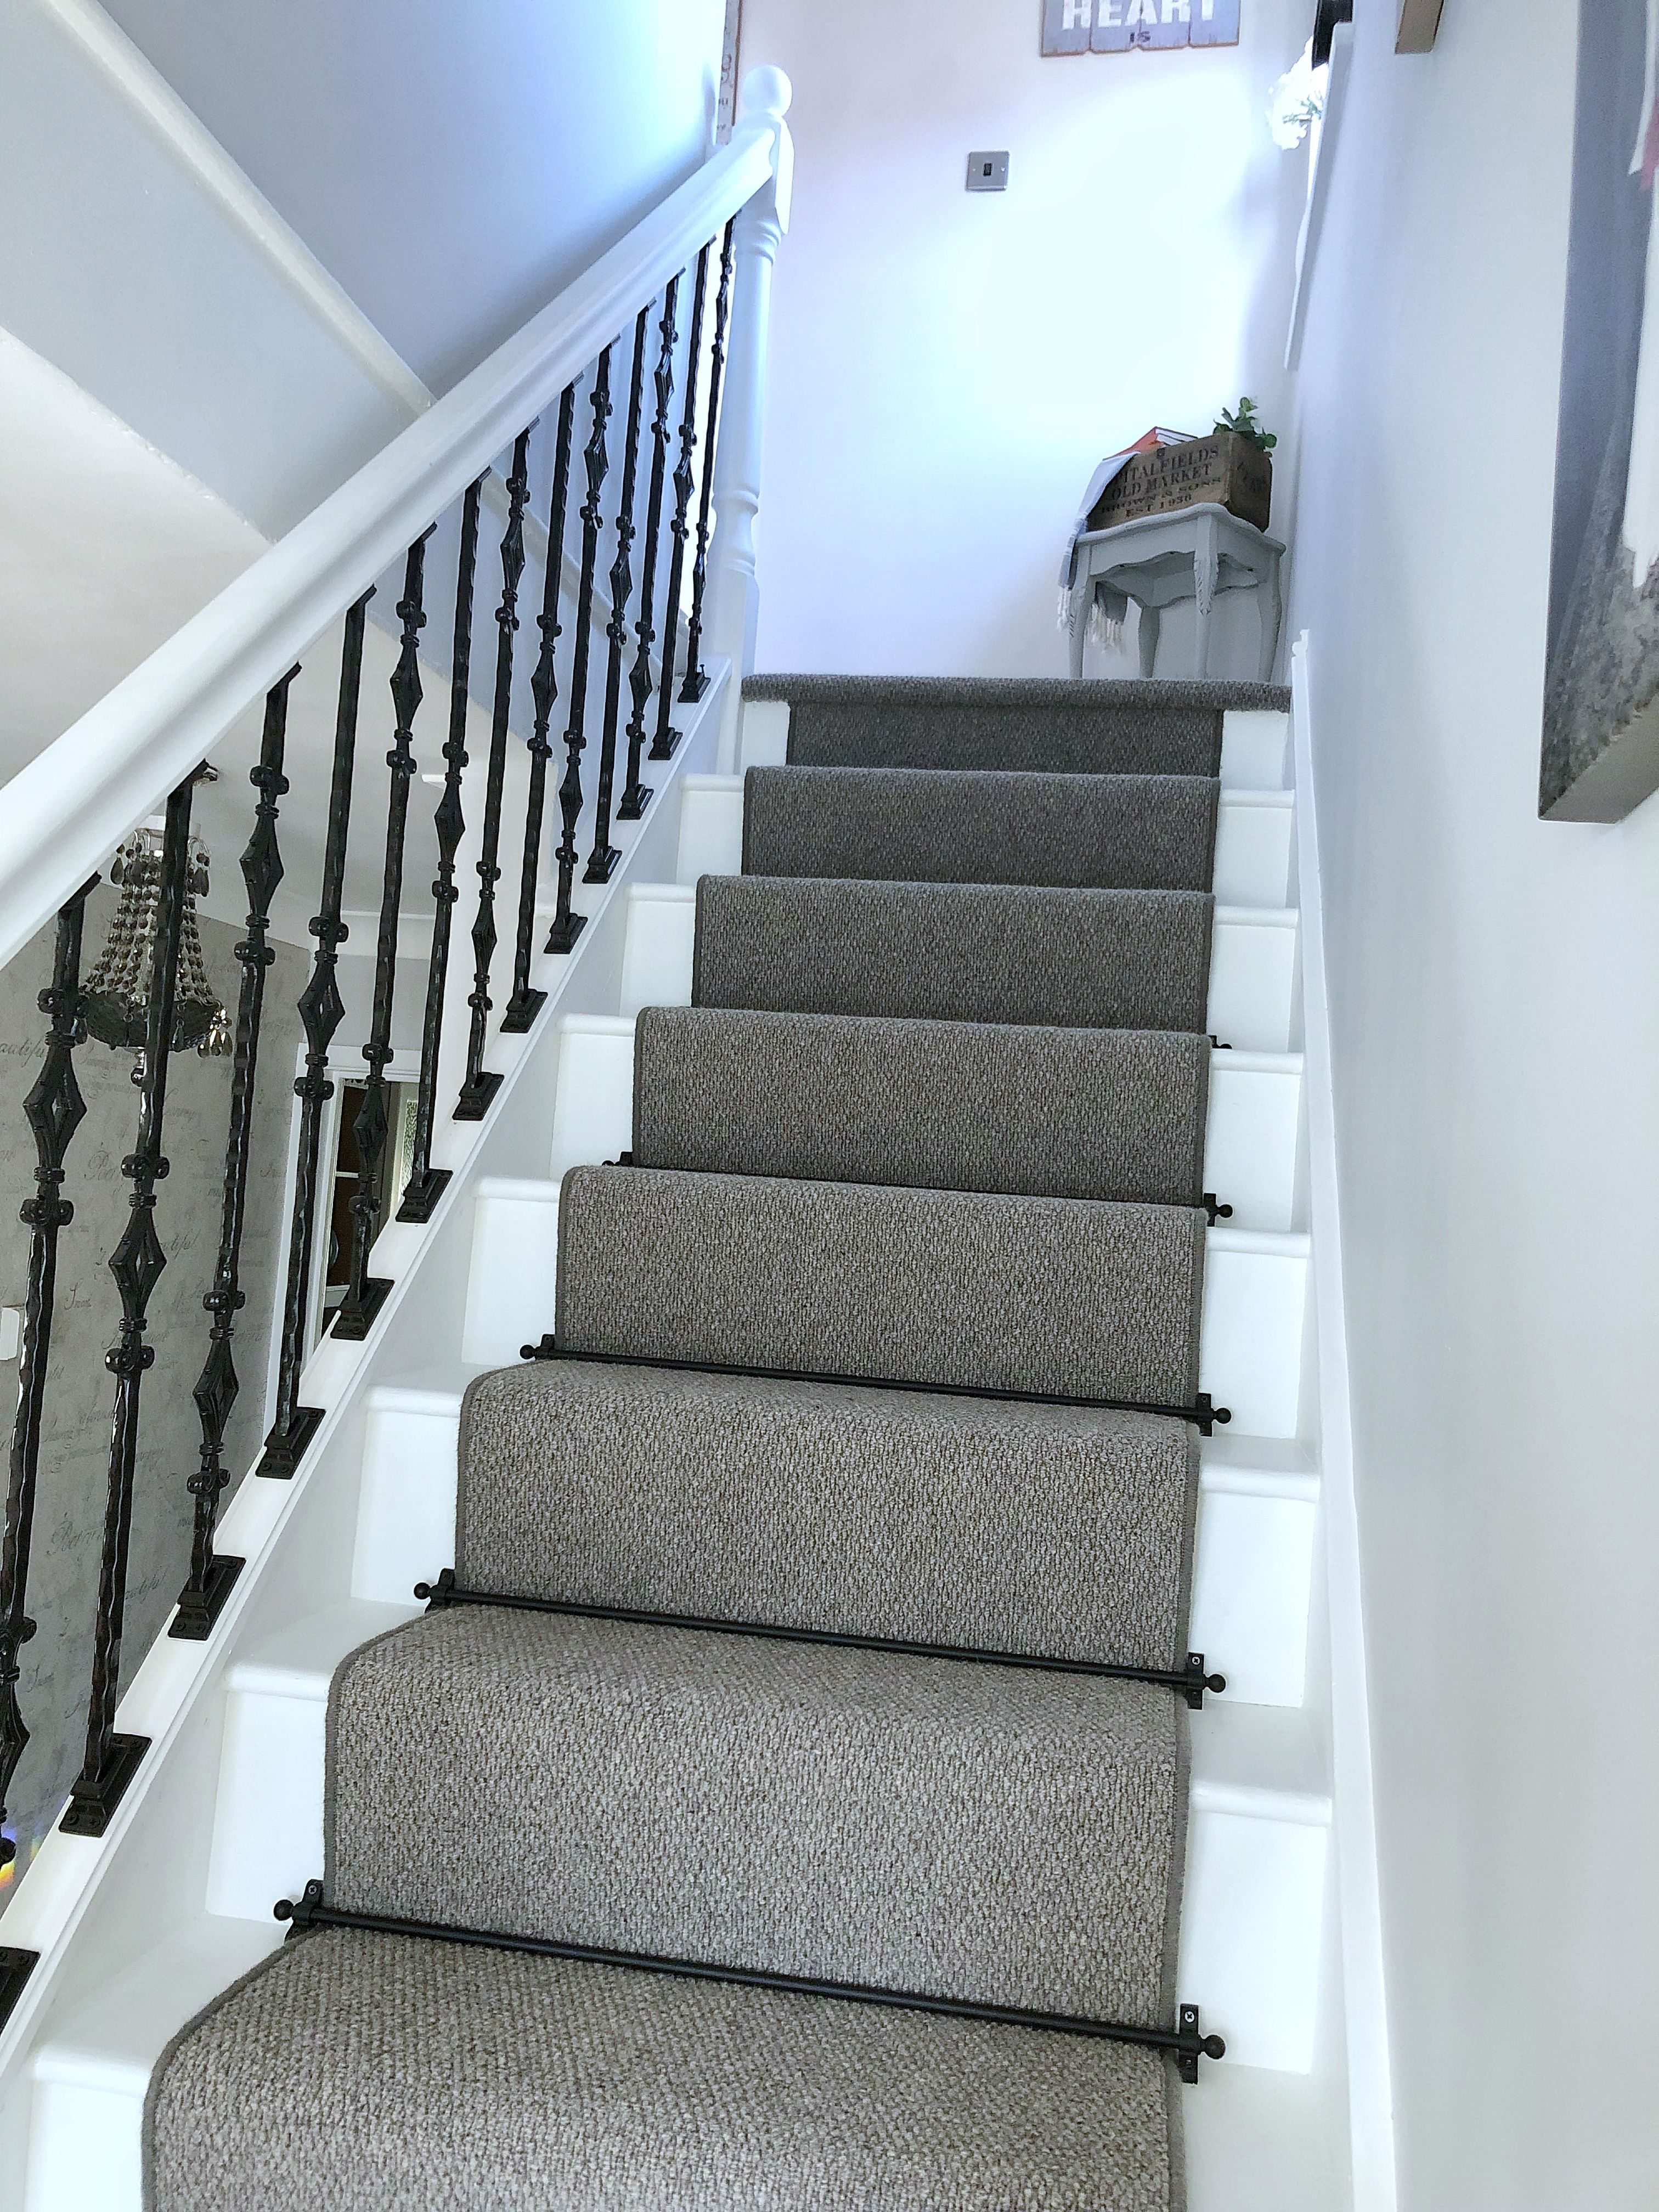 My New Staircase Grey Runner Carpet Black Stair Rods Gothic   Black And White Carpet Stairs   Victorian   Striped   Geometric   Low Cost Simple   Unusual